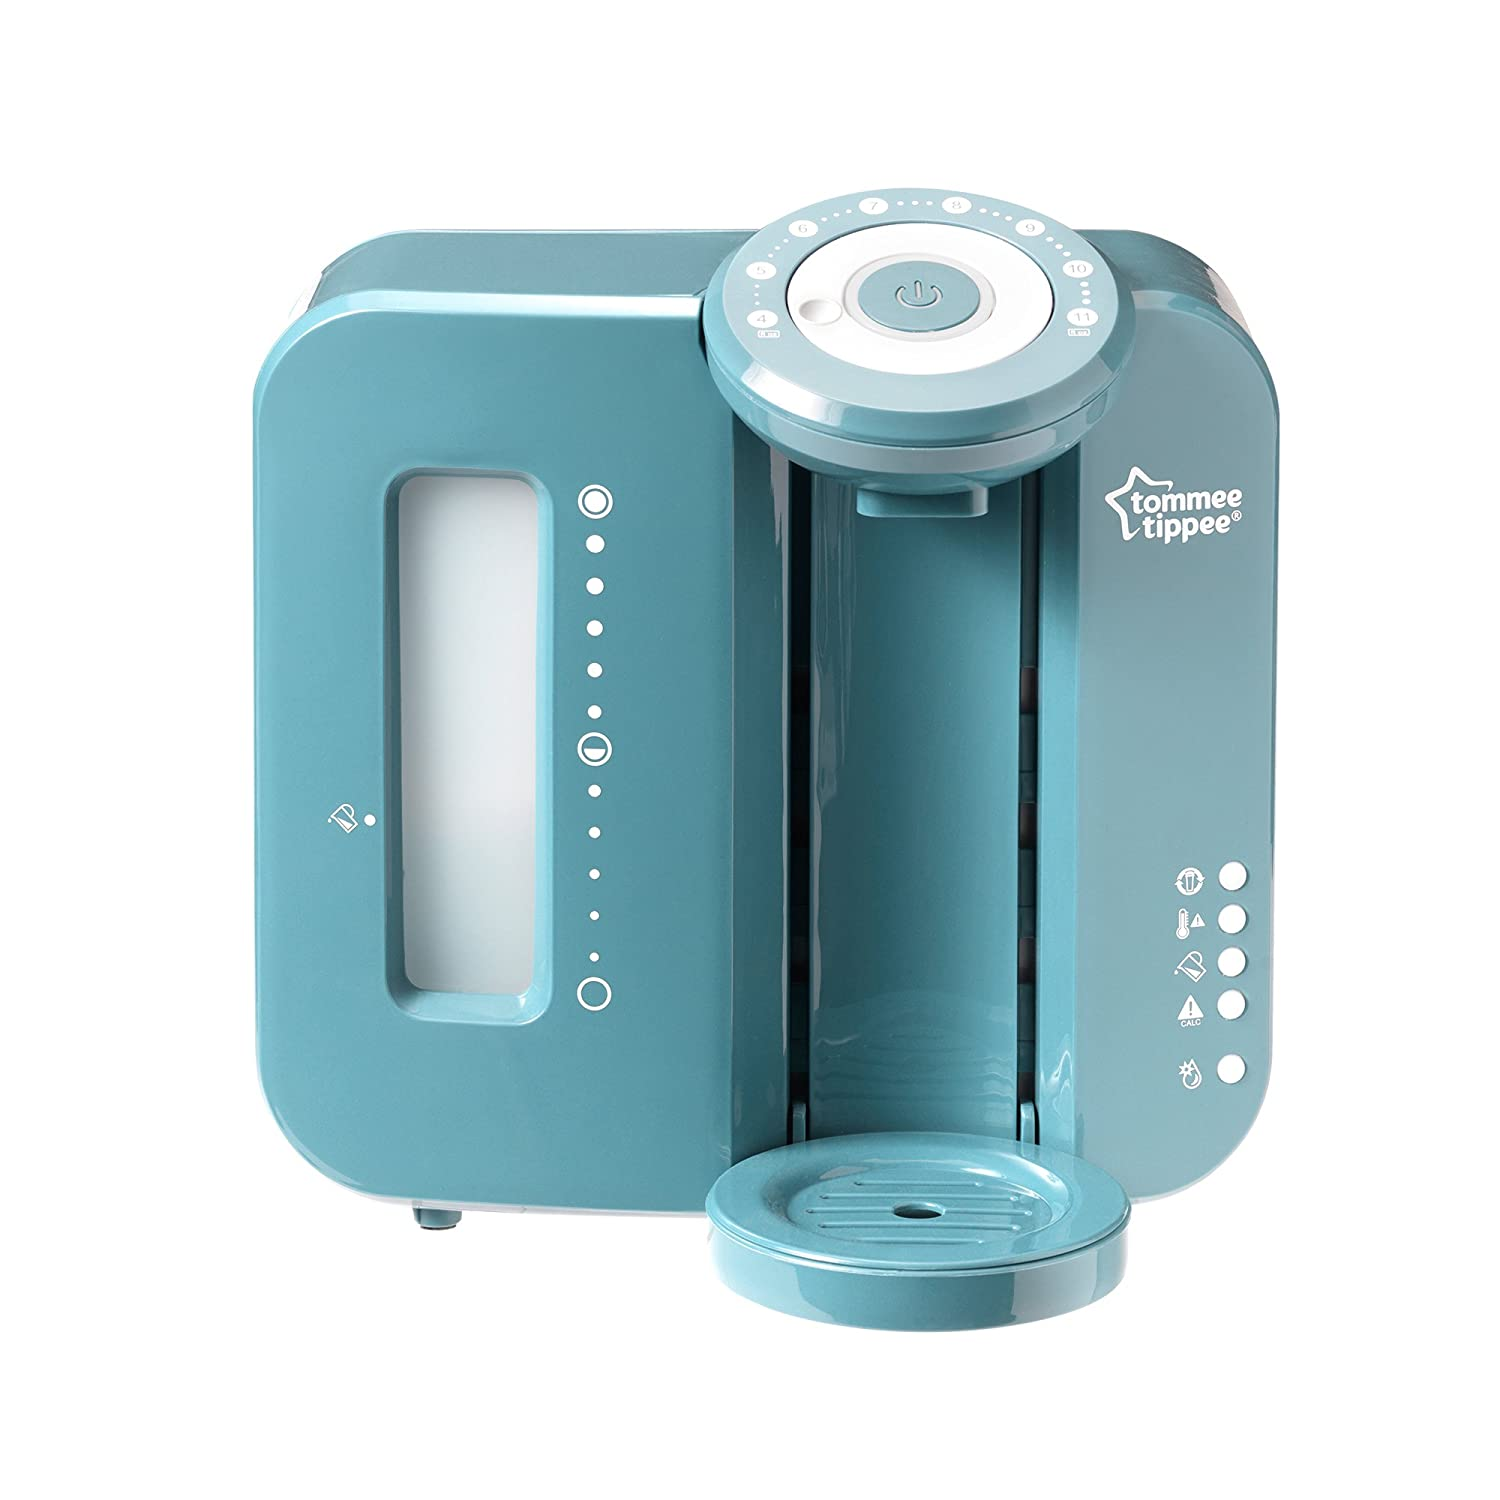 Tommee Tippee Perfect Prep Machine Cool Blue Amazon Baby